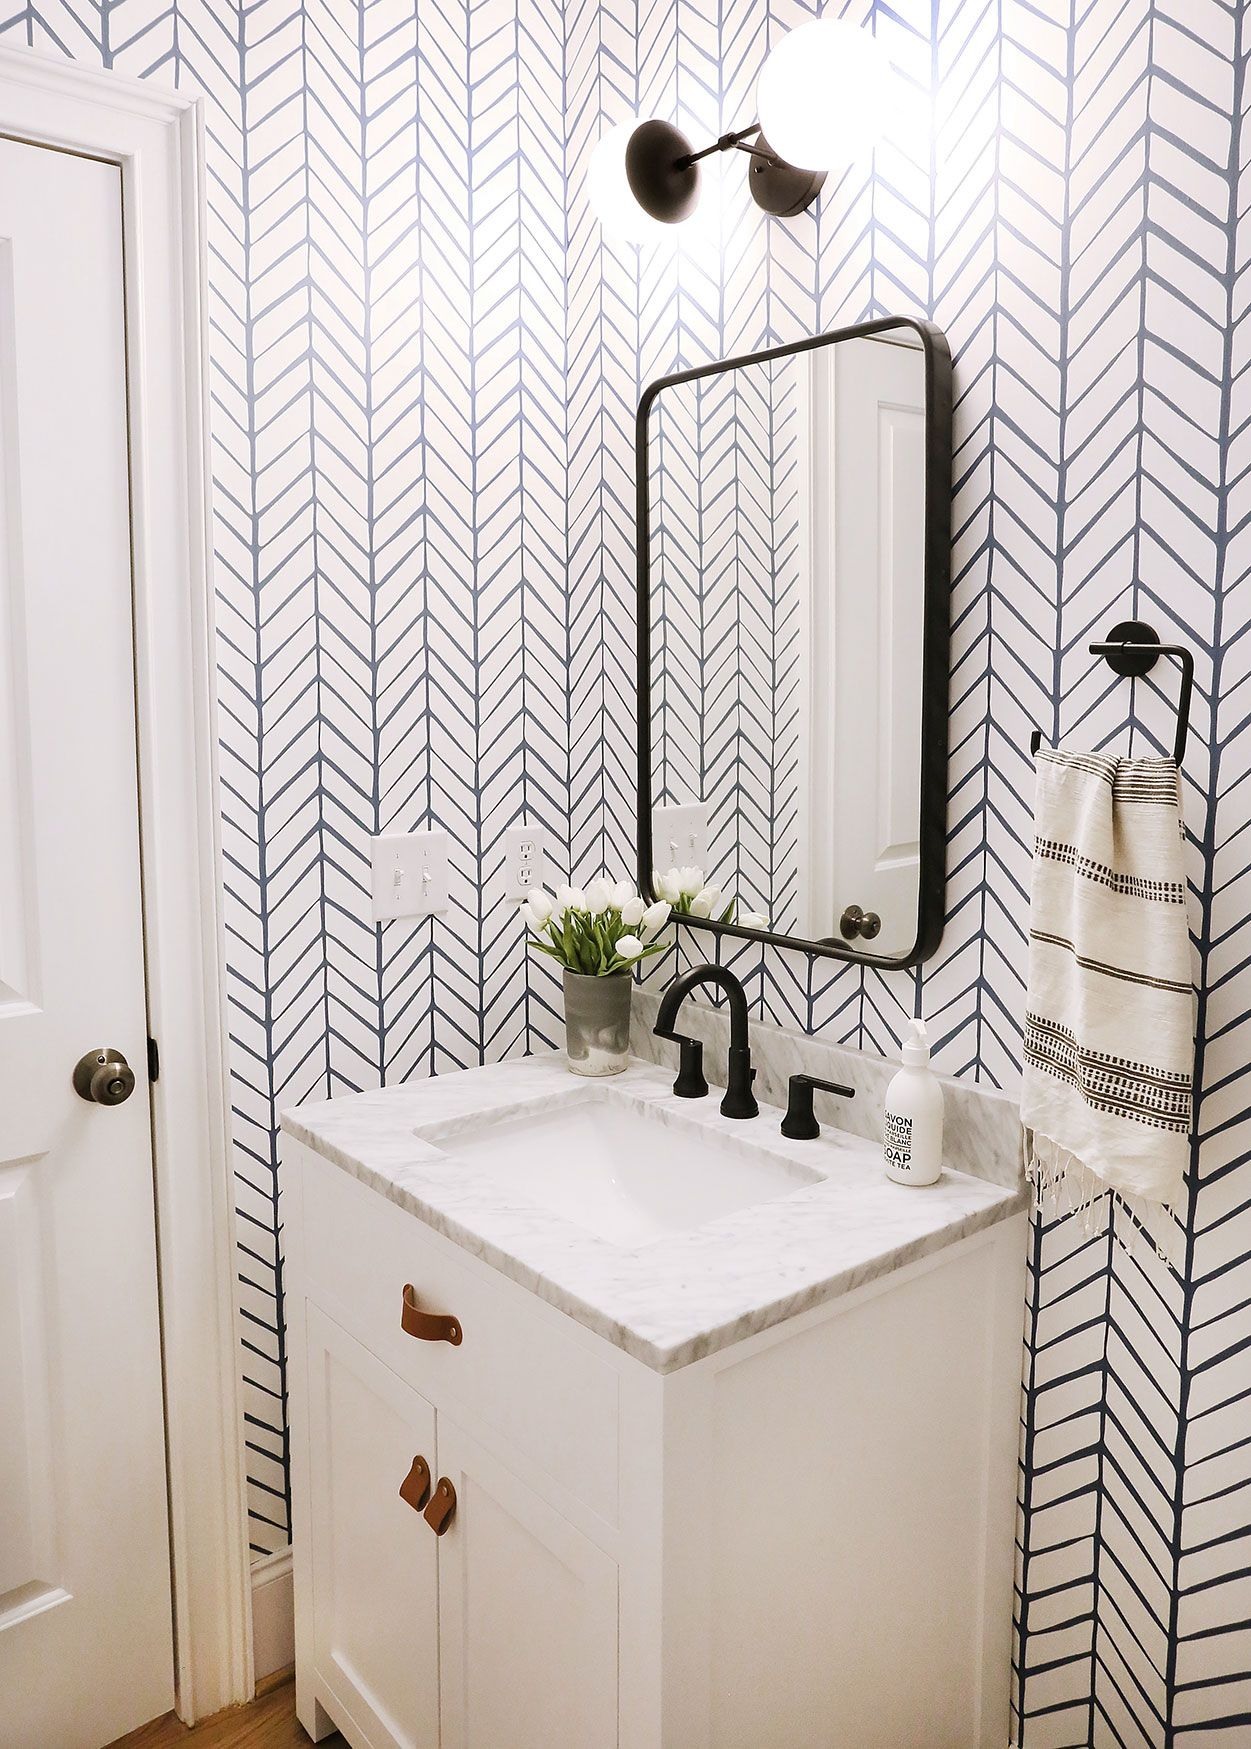 Pin by Tanya Ten on Bathroom & Laundry Room Ideas in 2018 ...